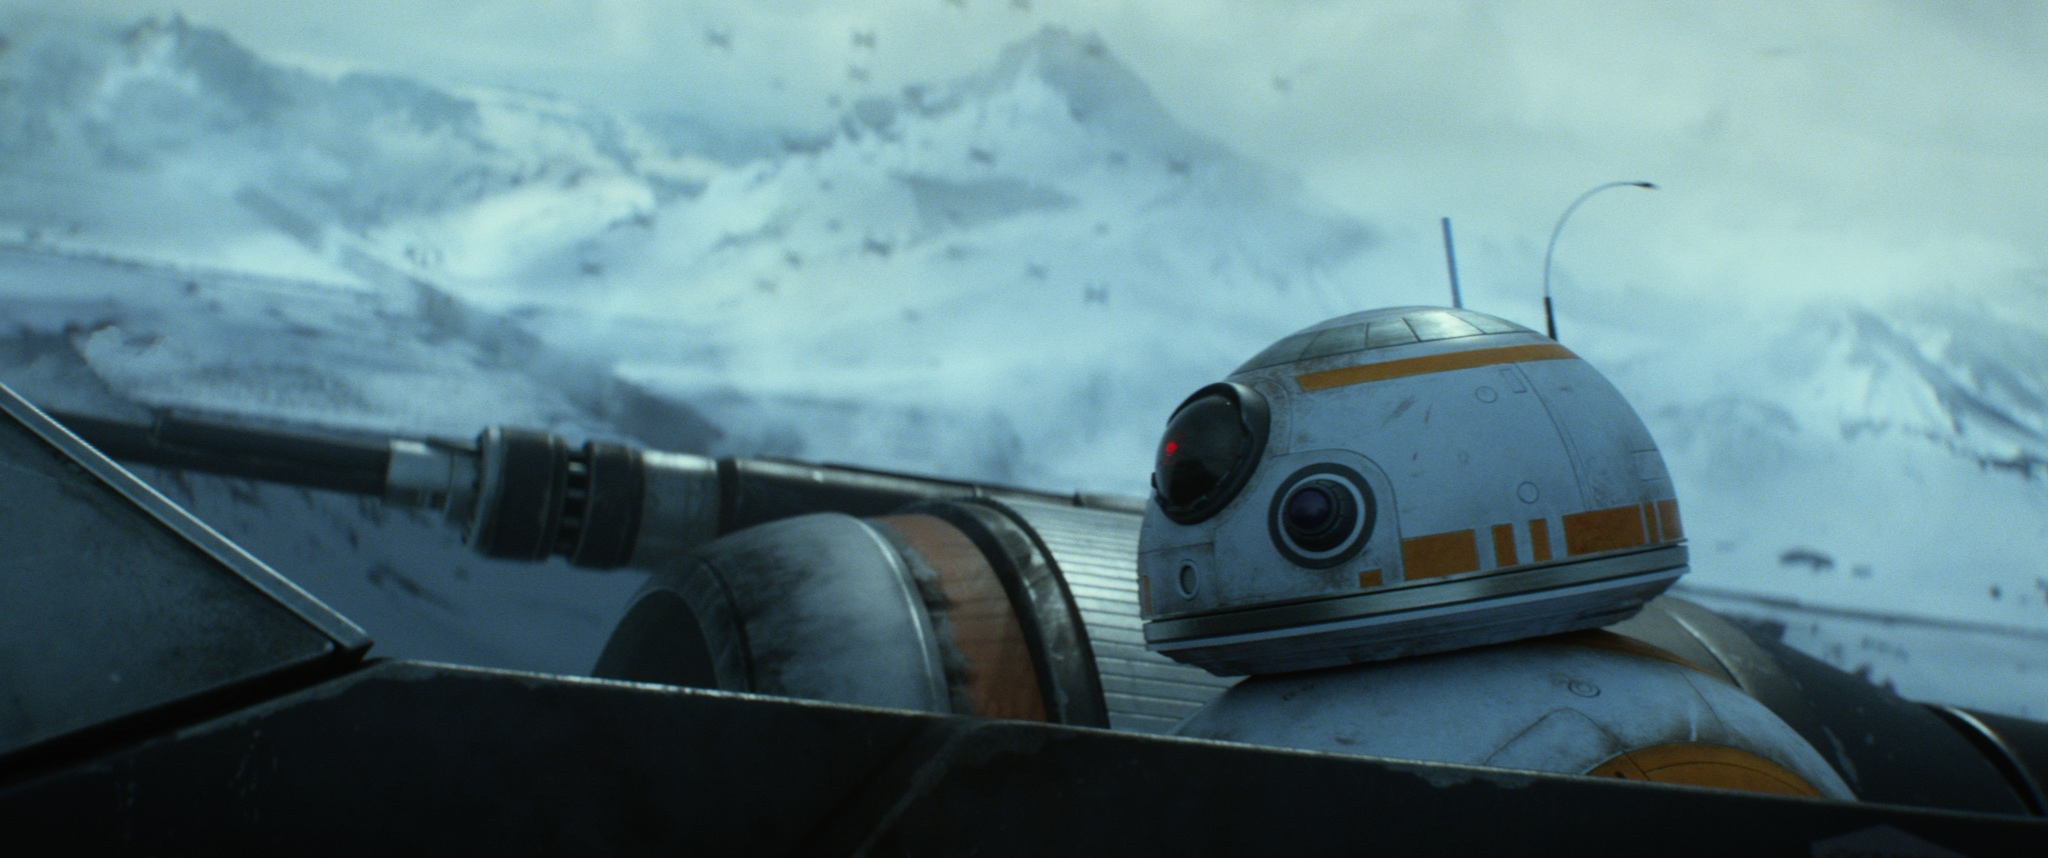 BB 8 In The Back Of An X Wing As TIE Fighters Close